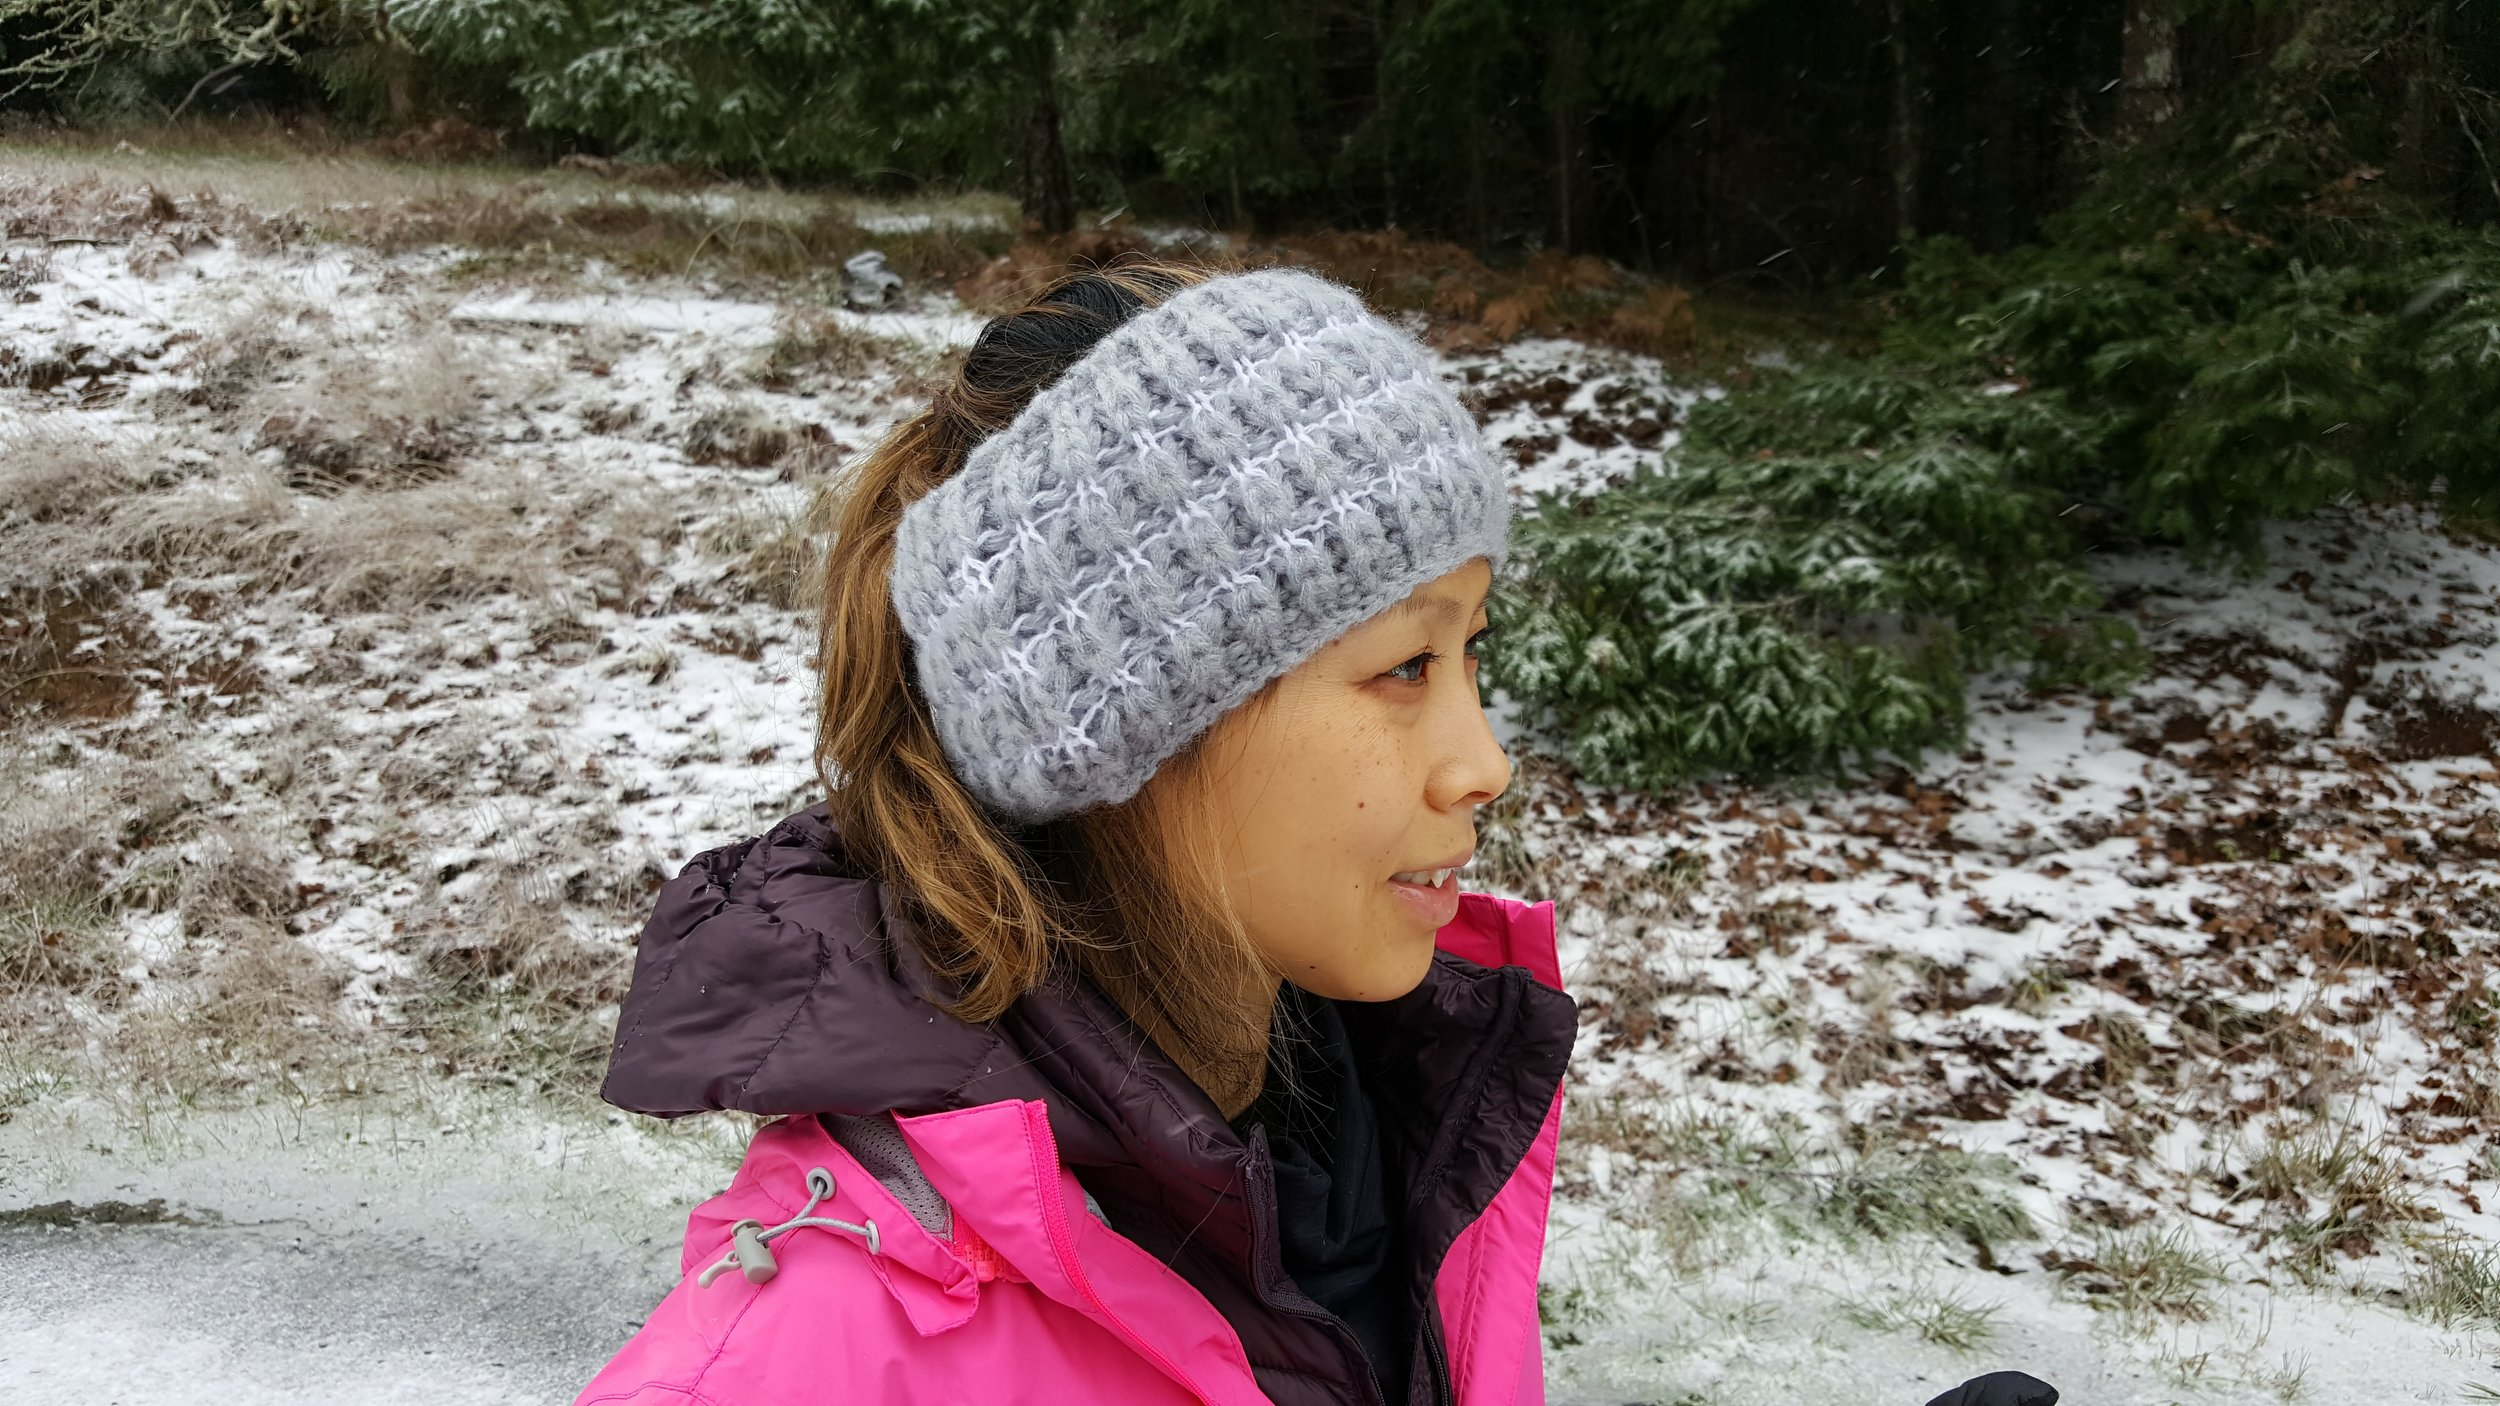 Accessorize with cold weather gear (Road Runner Sports Ear muffs do the trick)